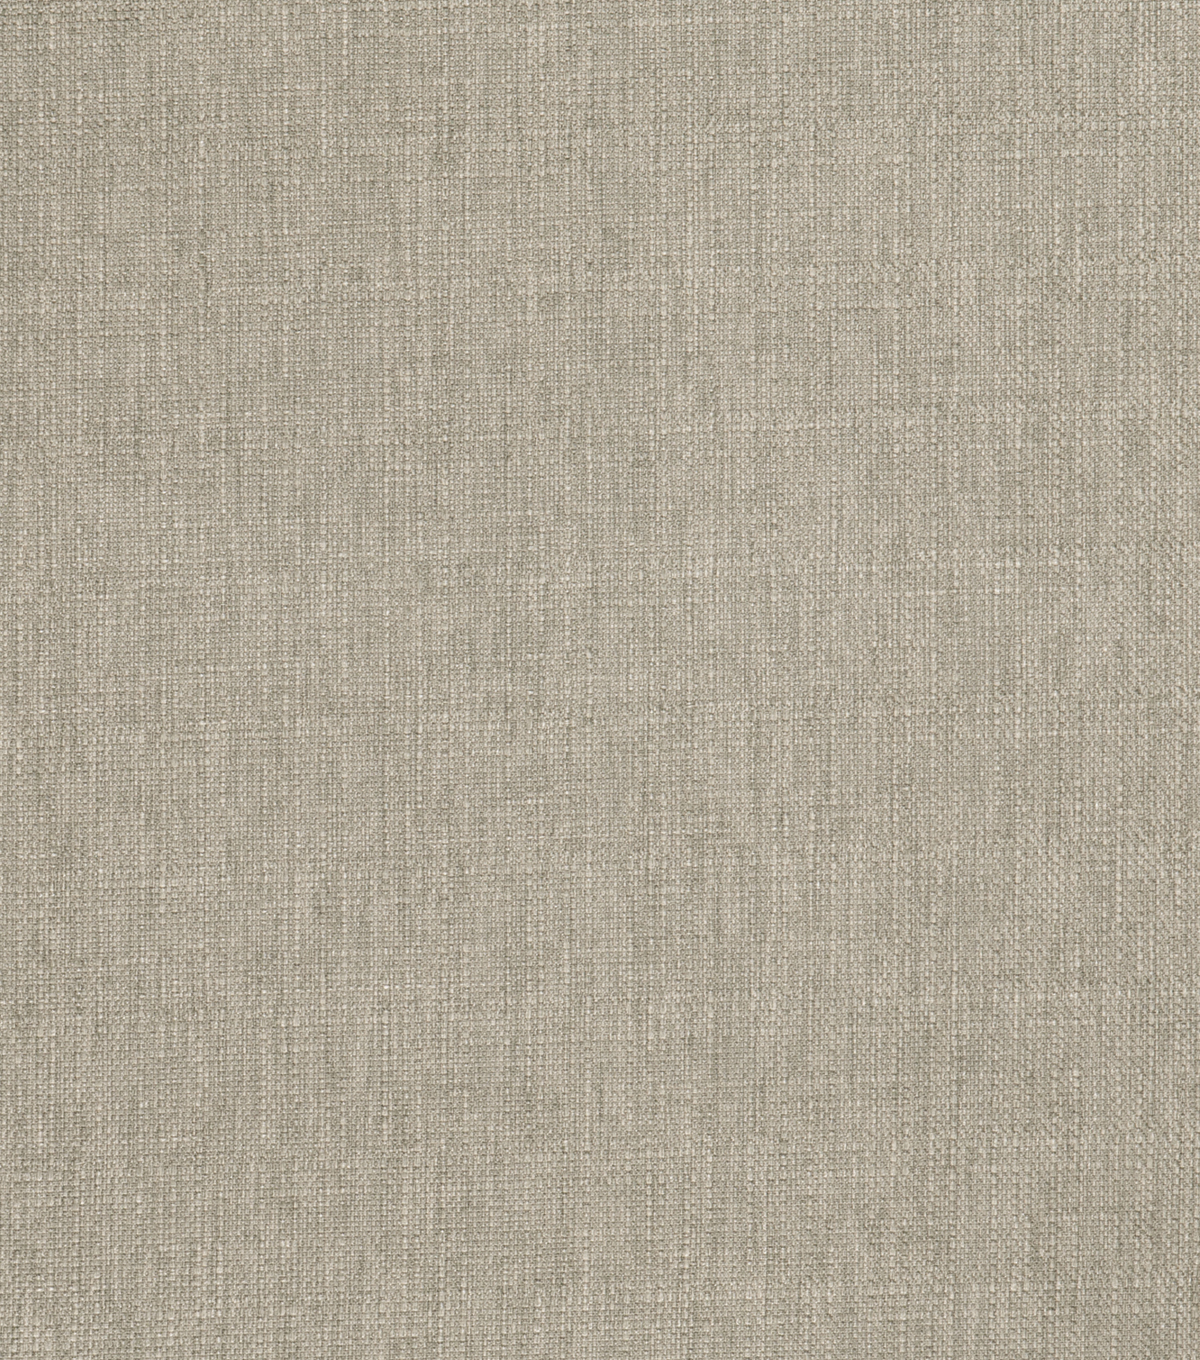 Home Decor 8x8 Fabric Swatch-Eaton Square Roberta Platinum